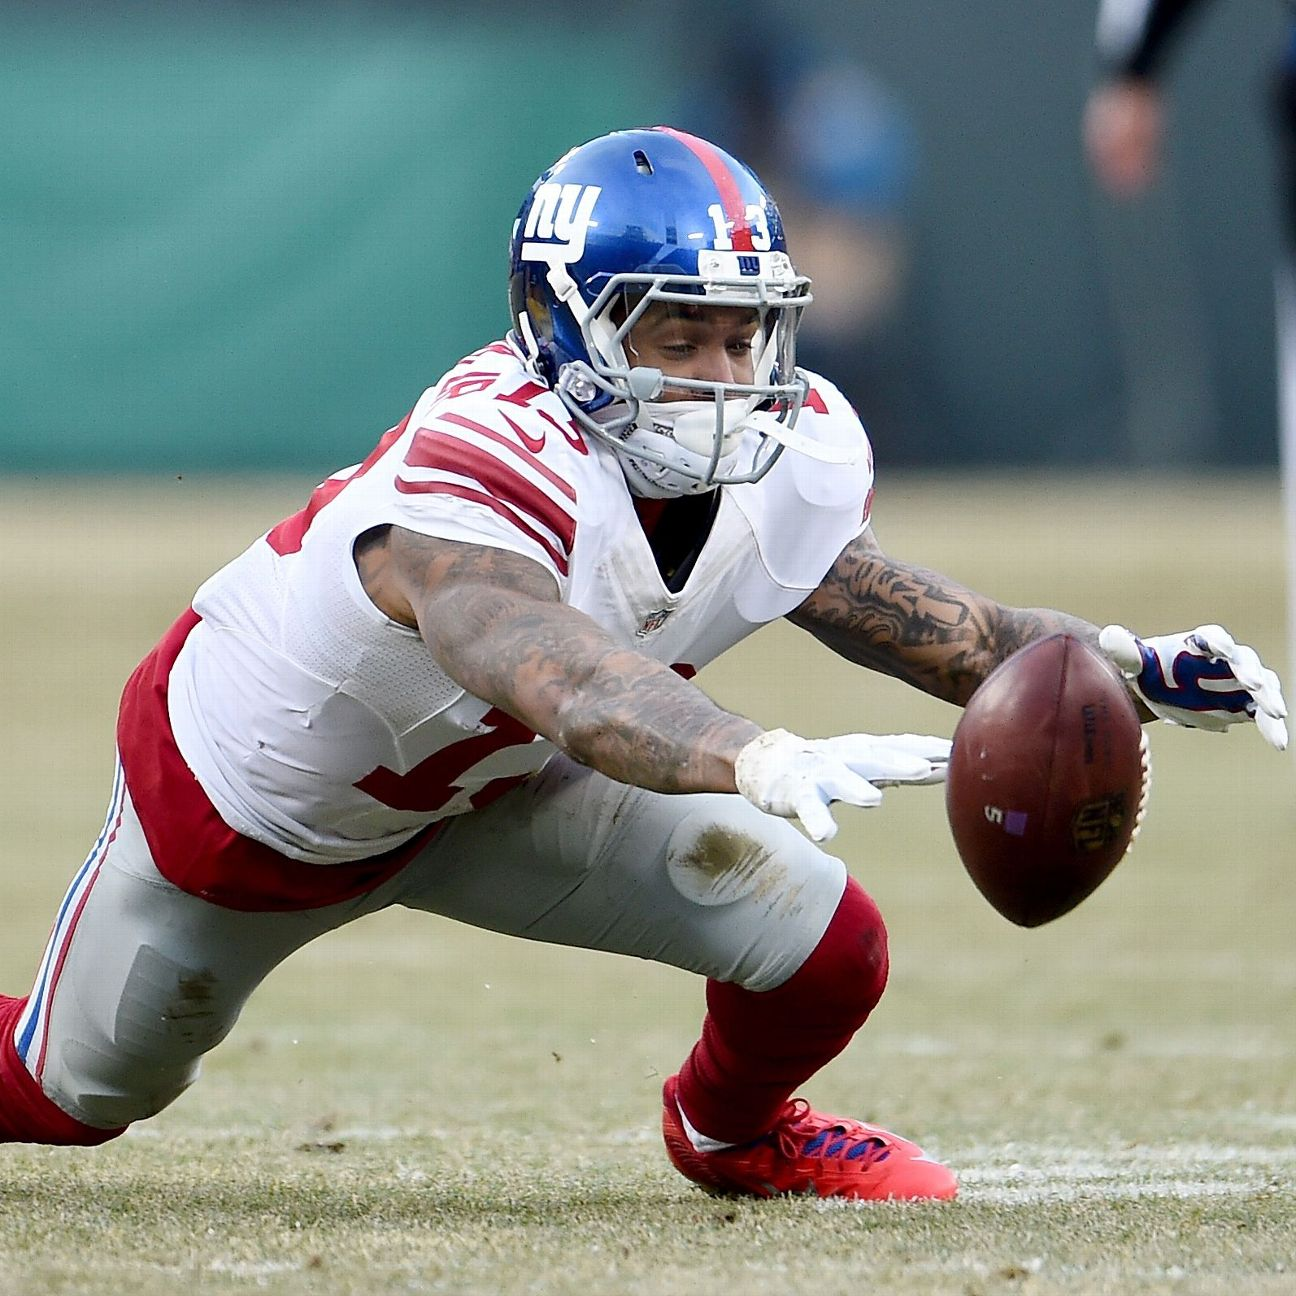 Jason Pierre Paul Signs One Year Deal With Giants: Eli Manning Says New York Giants Teammate Odell Beckham Jr